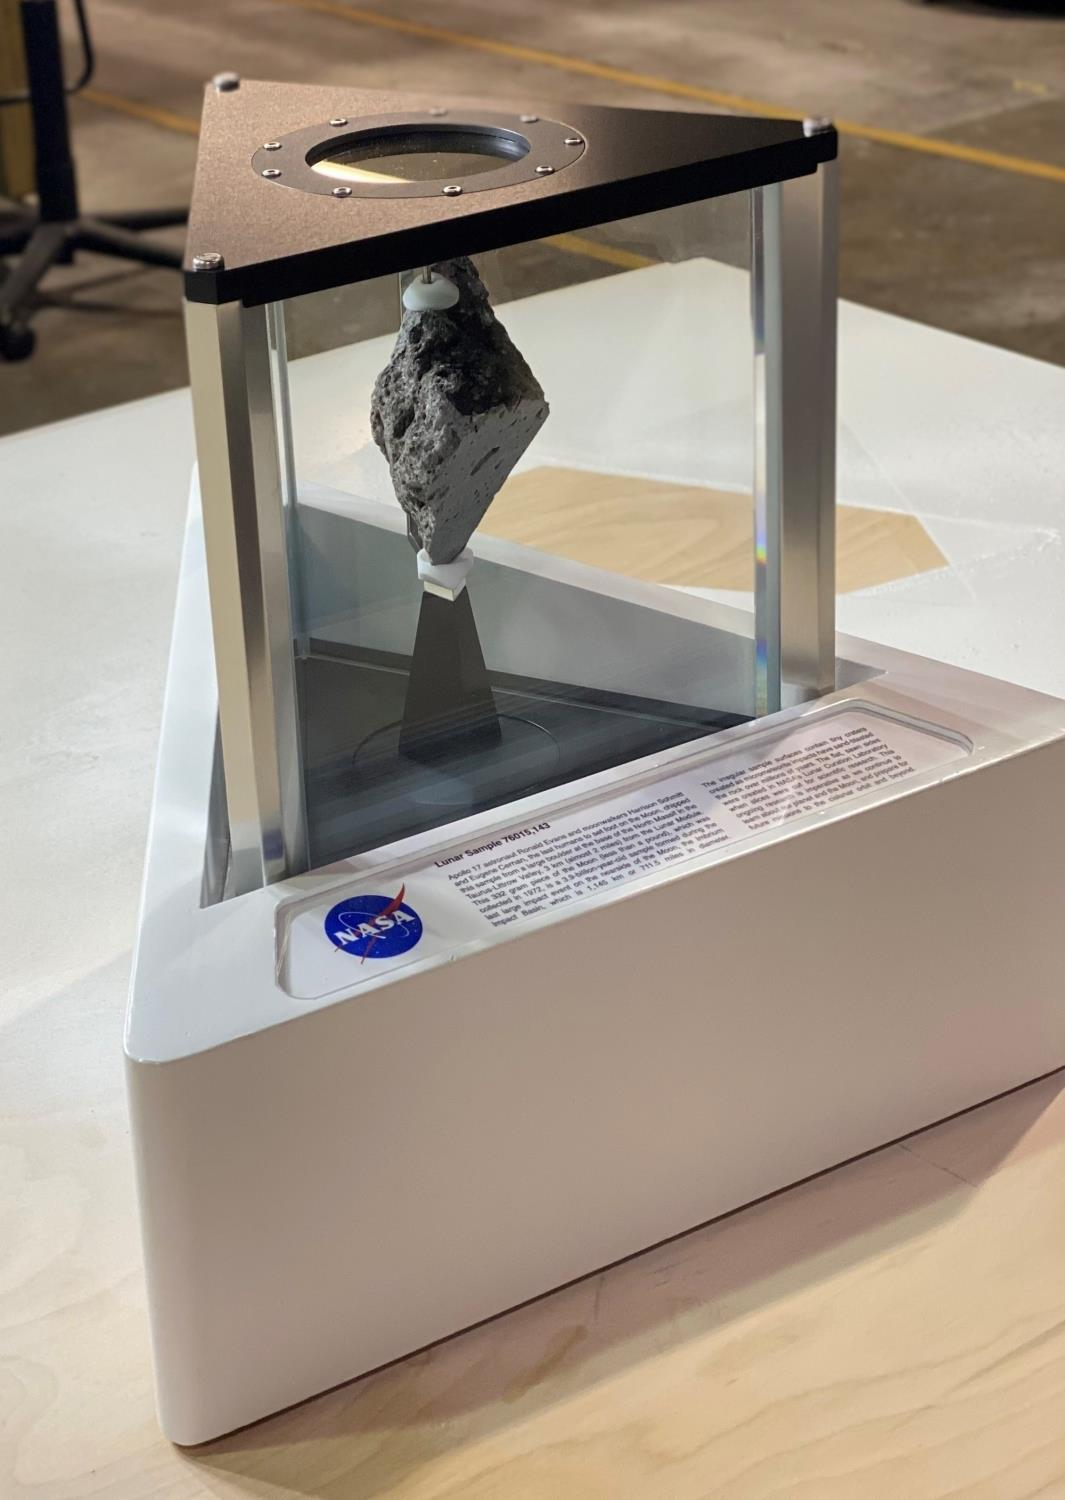 Moon rock now on display in Oval Office of White House - The Tribune